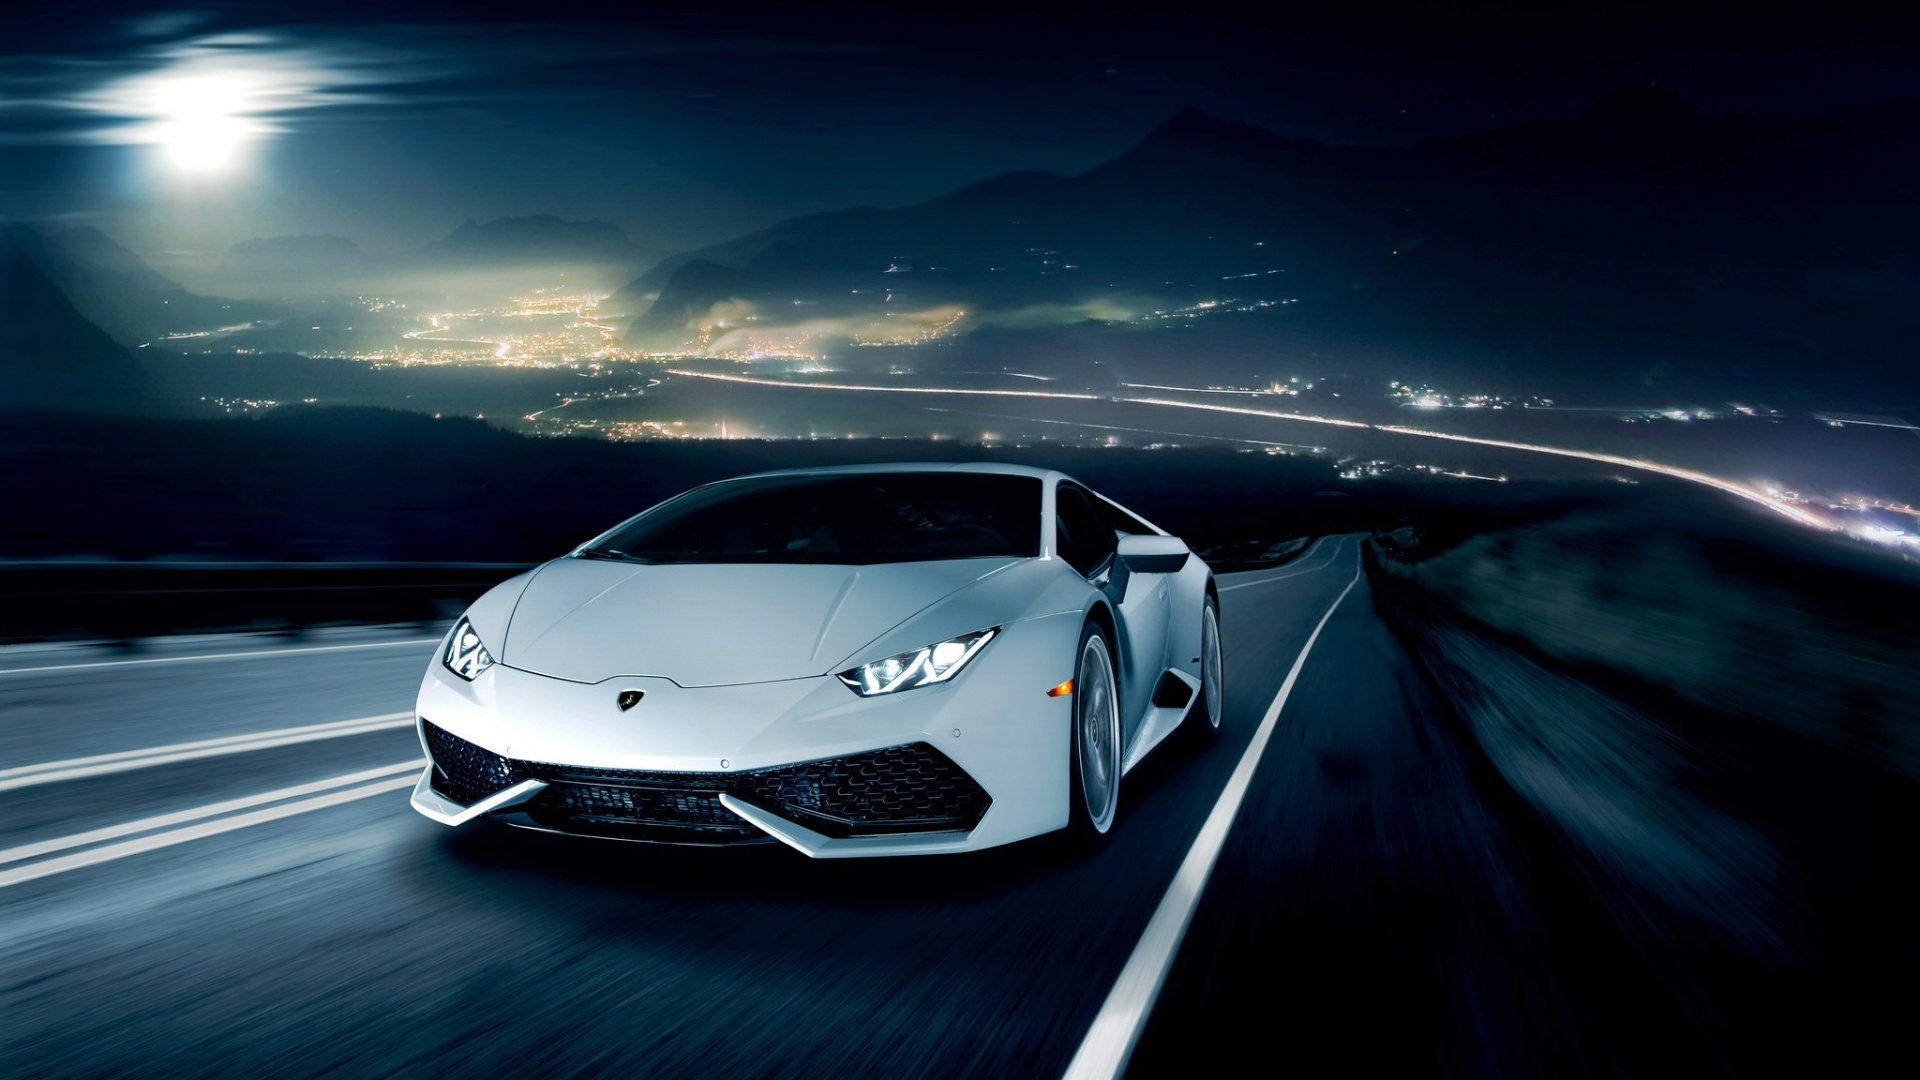 Lamborghini Huracan In The Night Wallpapers 1920x1080